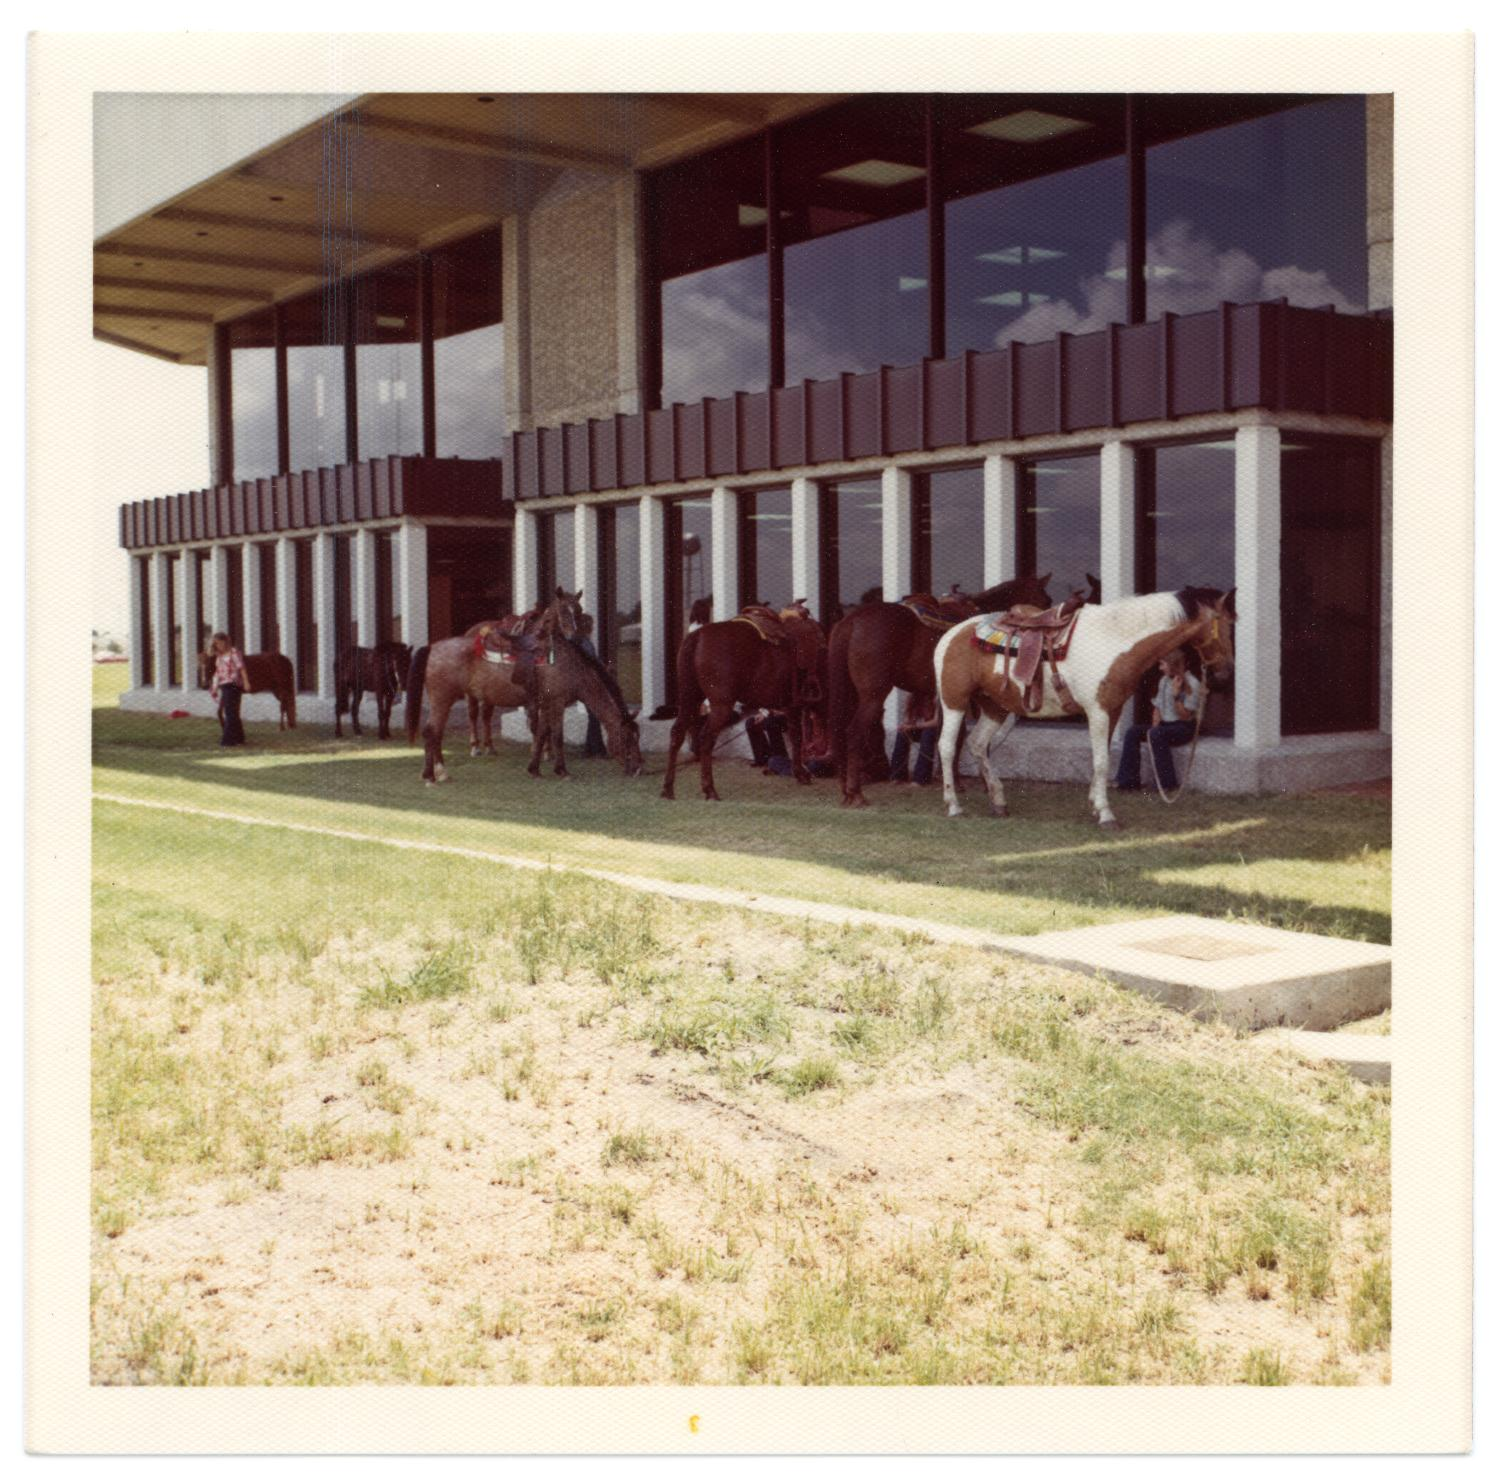 Richardson Centennial Celebration, Photograph of a line of horses in tack at the Centennial celebration. They are standing beside Richardson Public Library. A group of people are sitting on the window sills of the building. One person in the background is standing.,